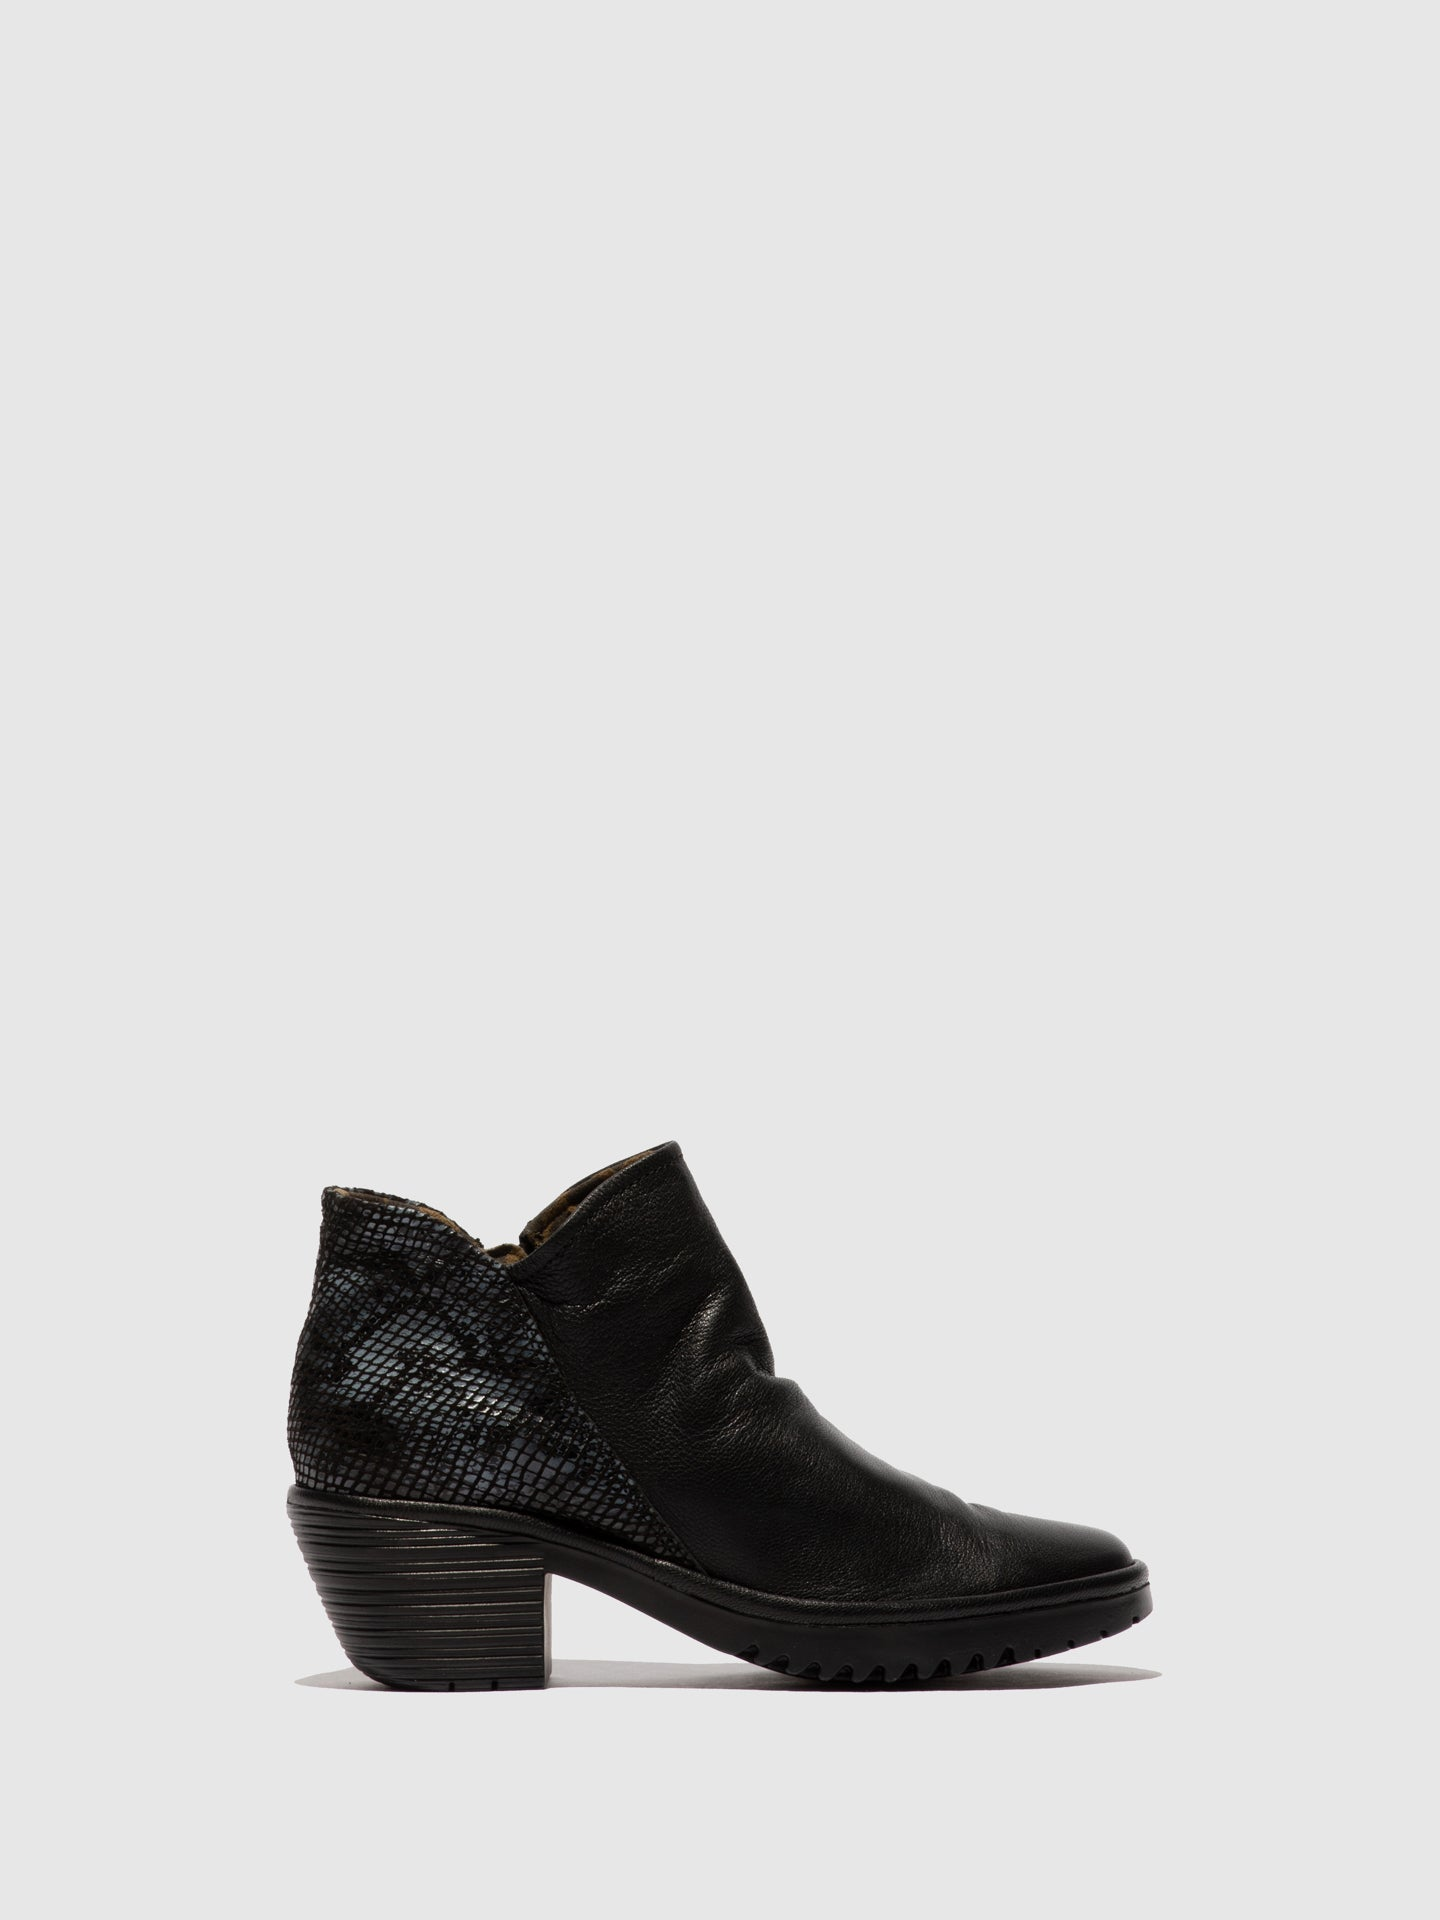 Fly London Zip Up Ankle Boots WEZO890FLY MOUSSE/SNAKE BLACK/BLACK(GREY)